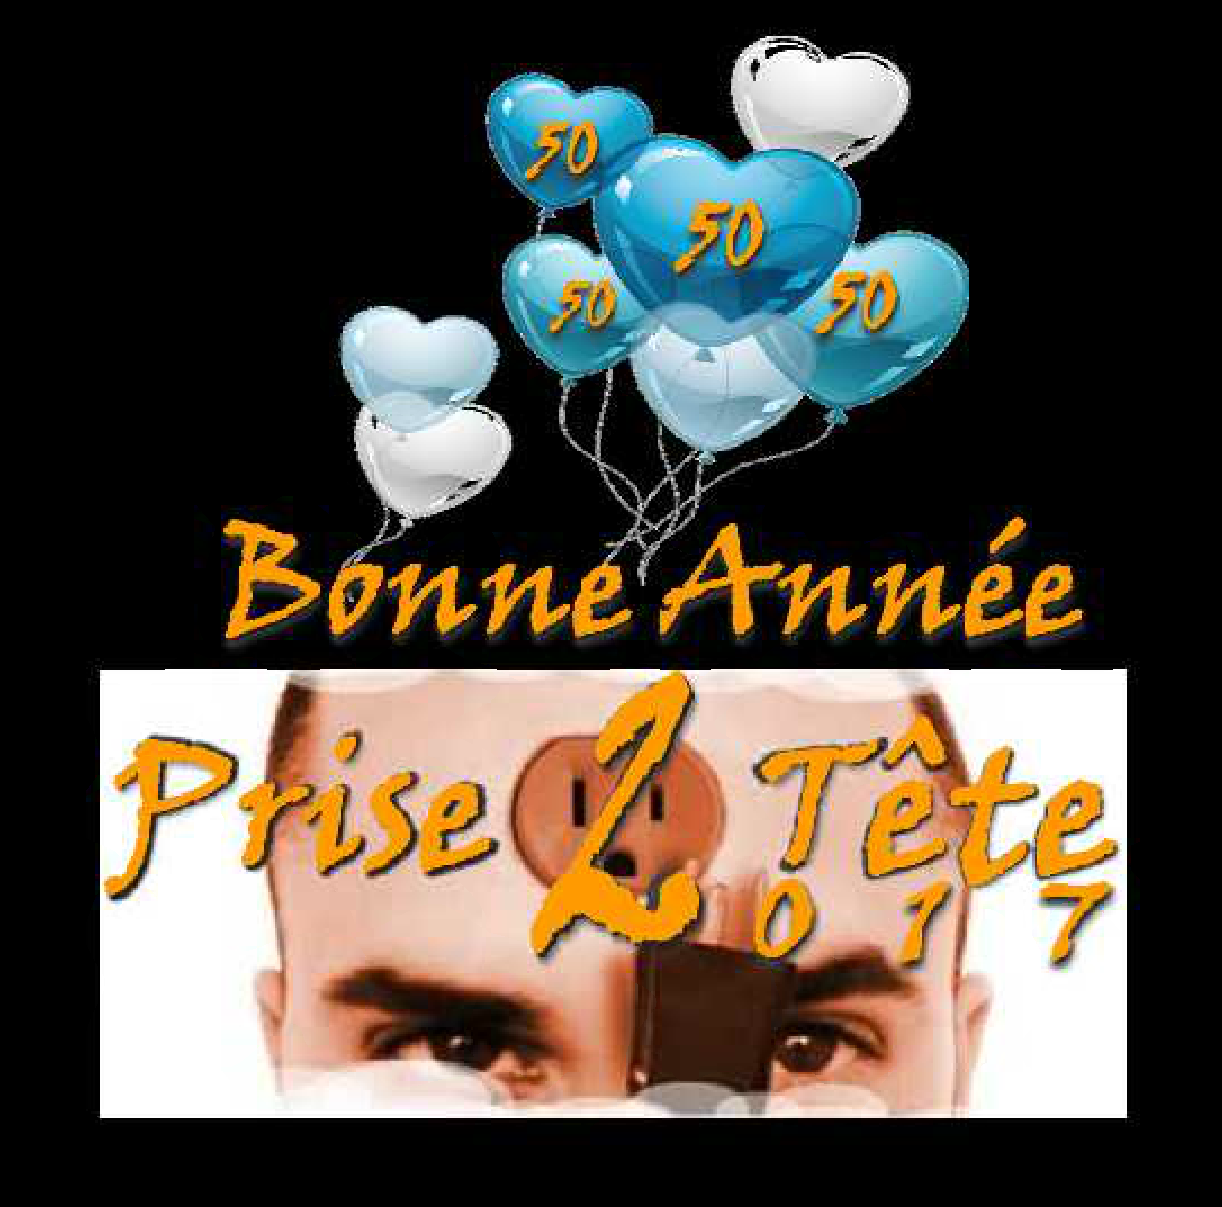 http://www.prise2tete.fr/upload/Franky1103-Puzzle.png